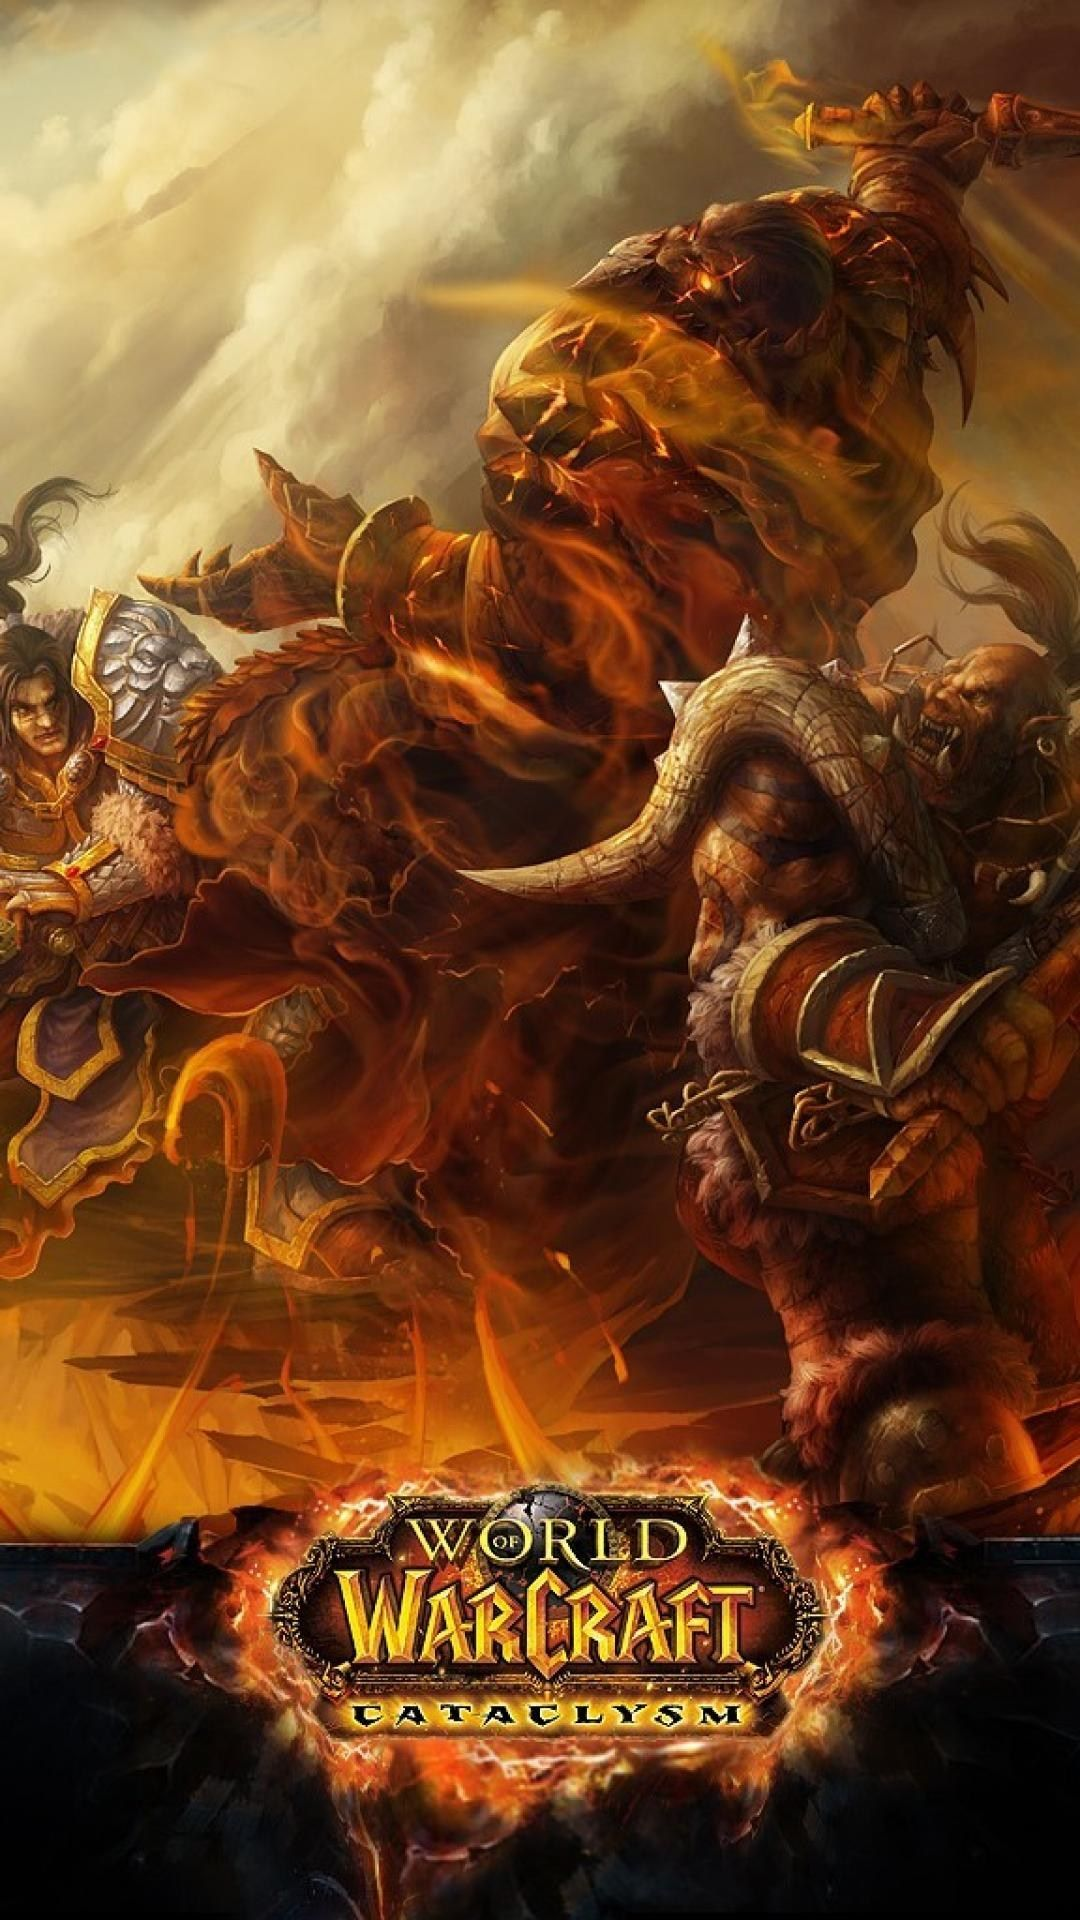 Wow Wallpaper For Iphone 6 Iphone 6 Wallpaper World Of Warcraft Iphone Wallpaper